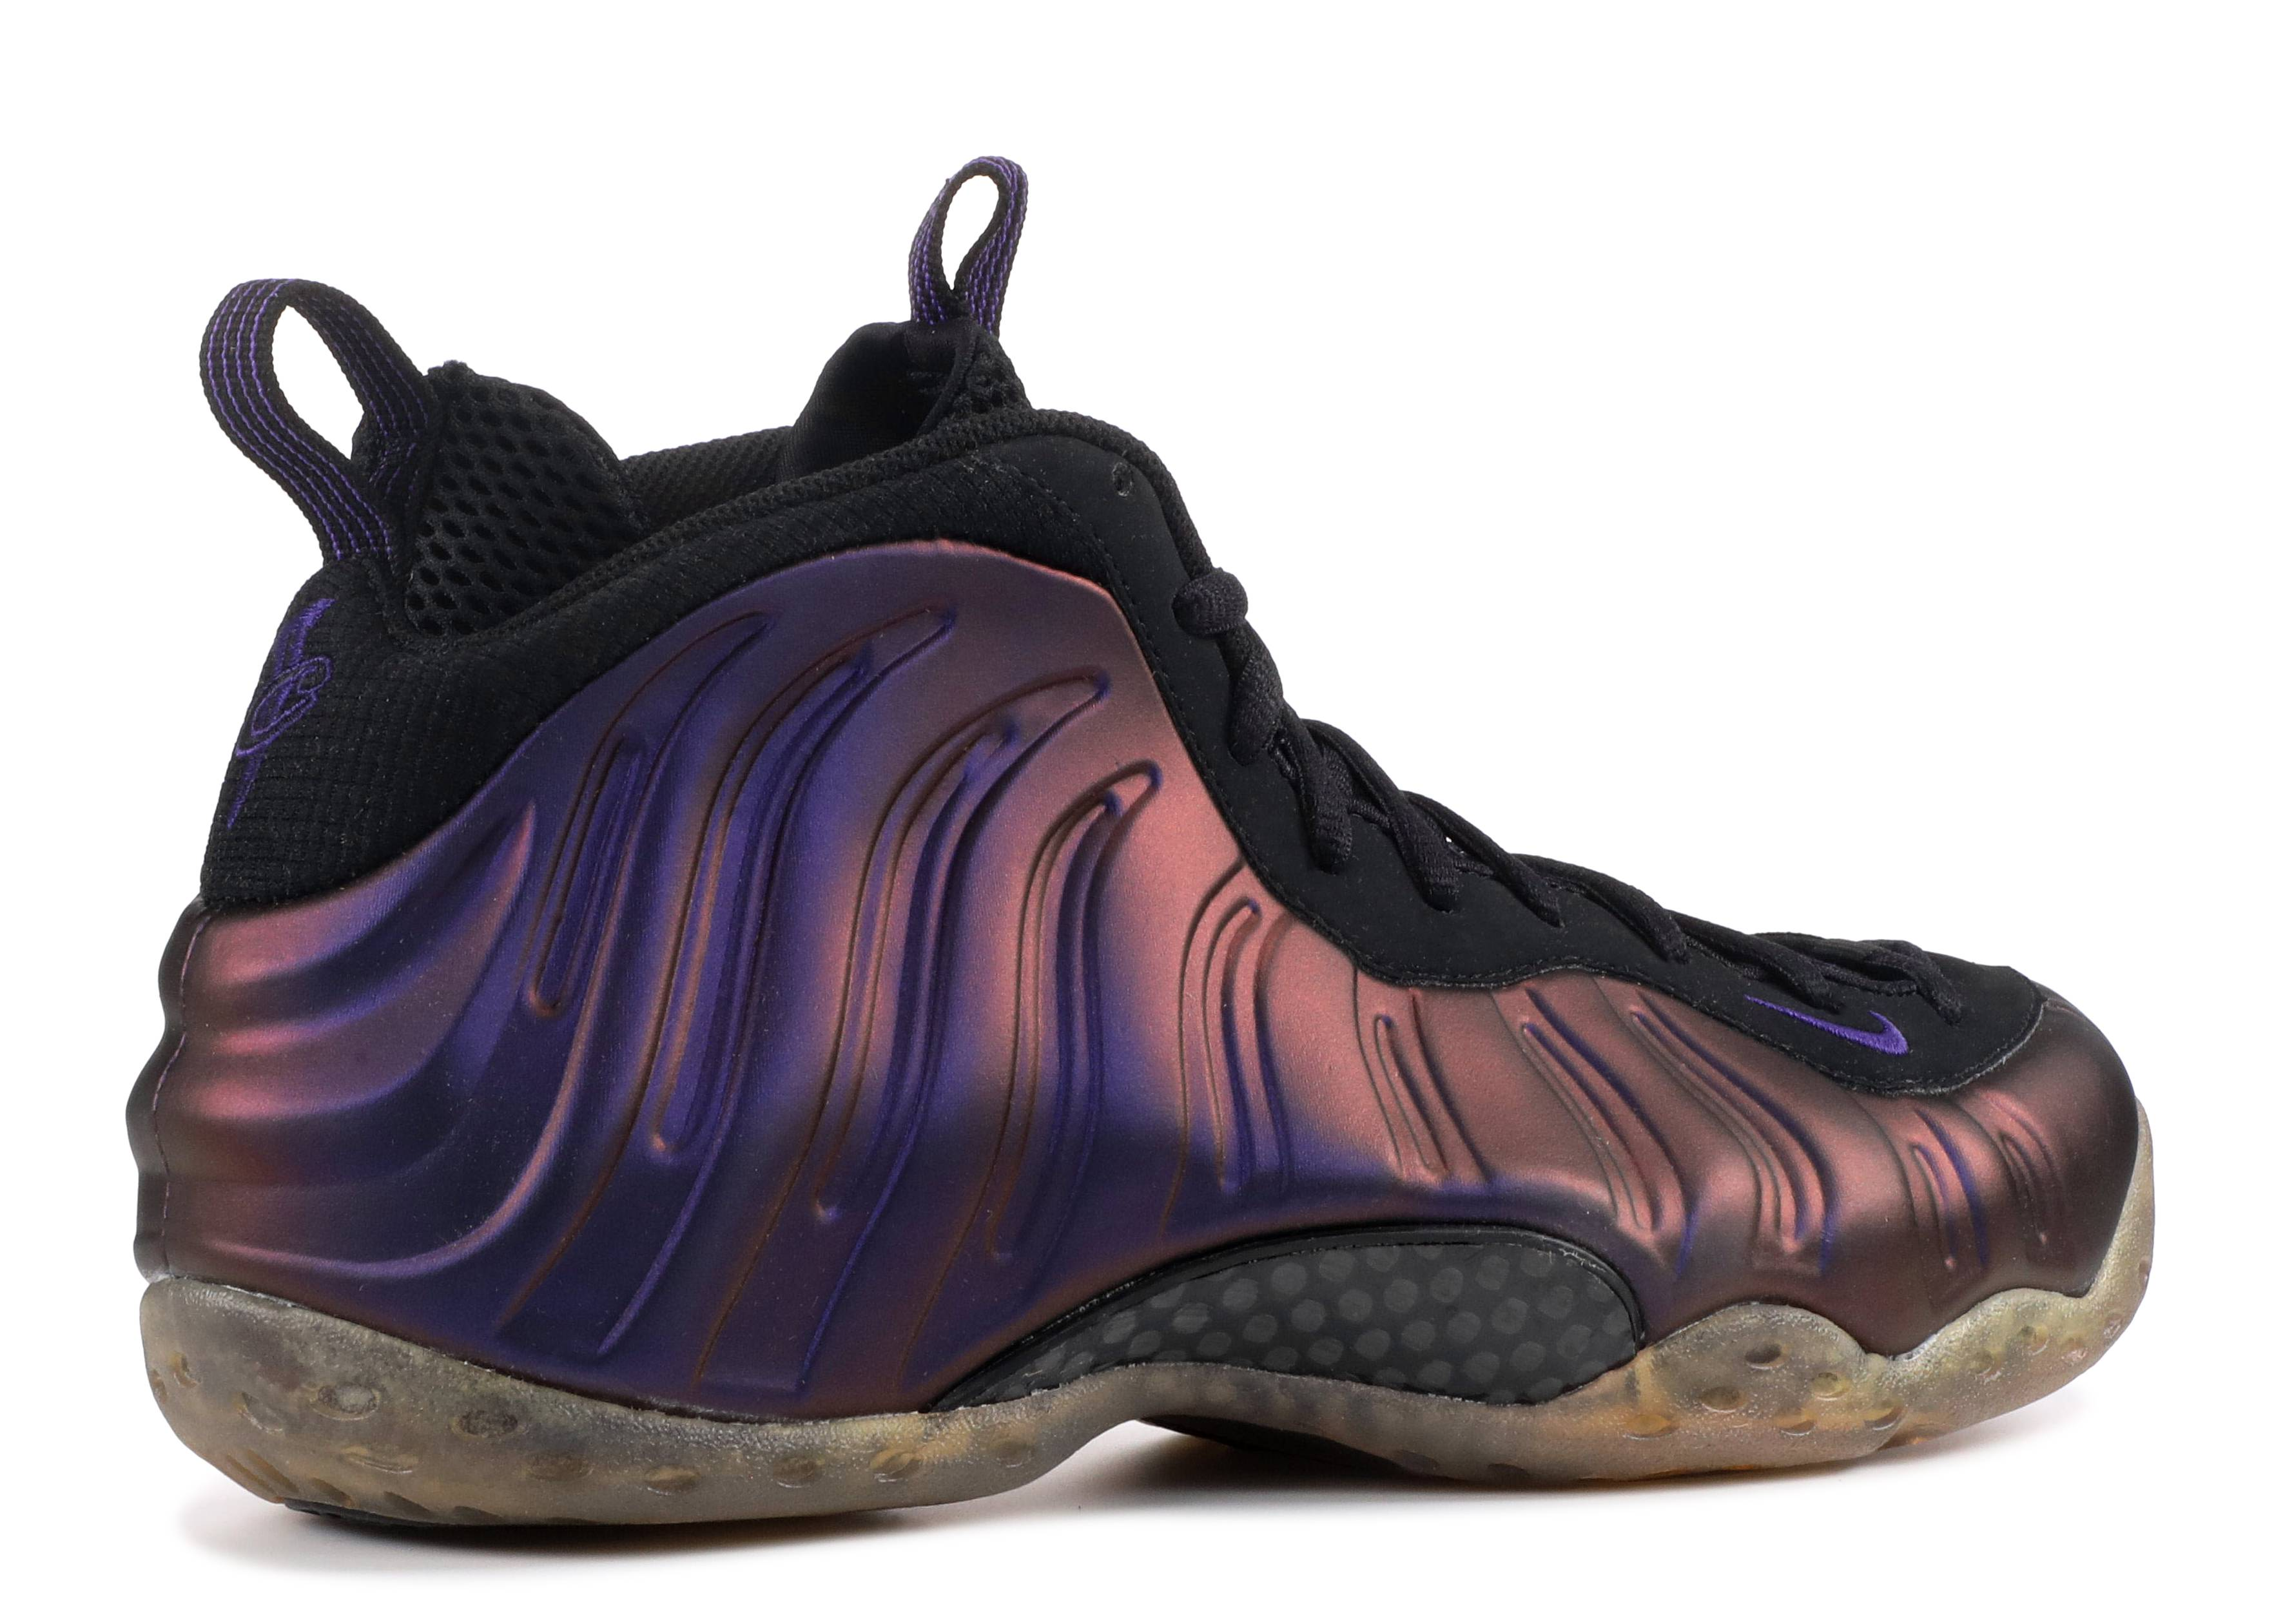 Nike Air Foamposite One Particle Beige Release DateScelf